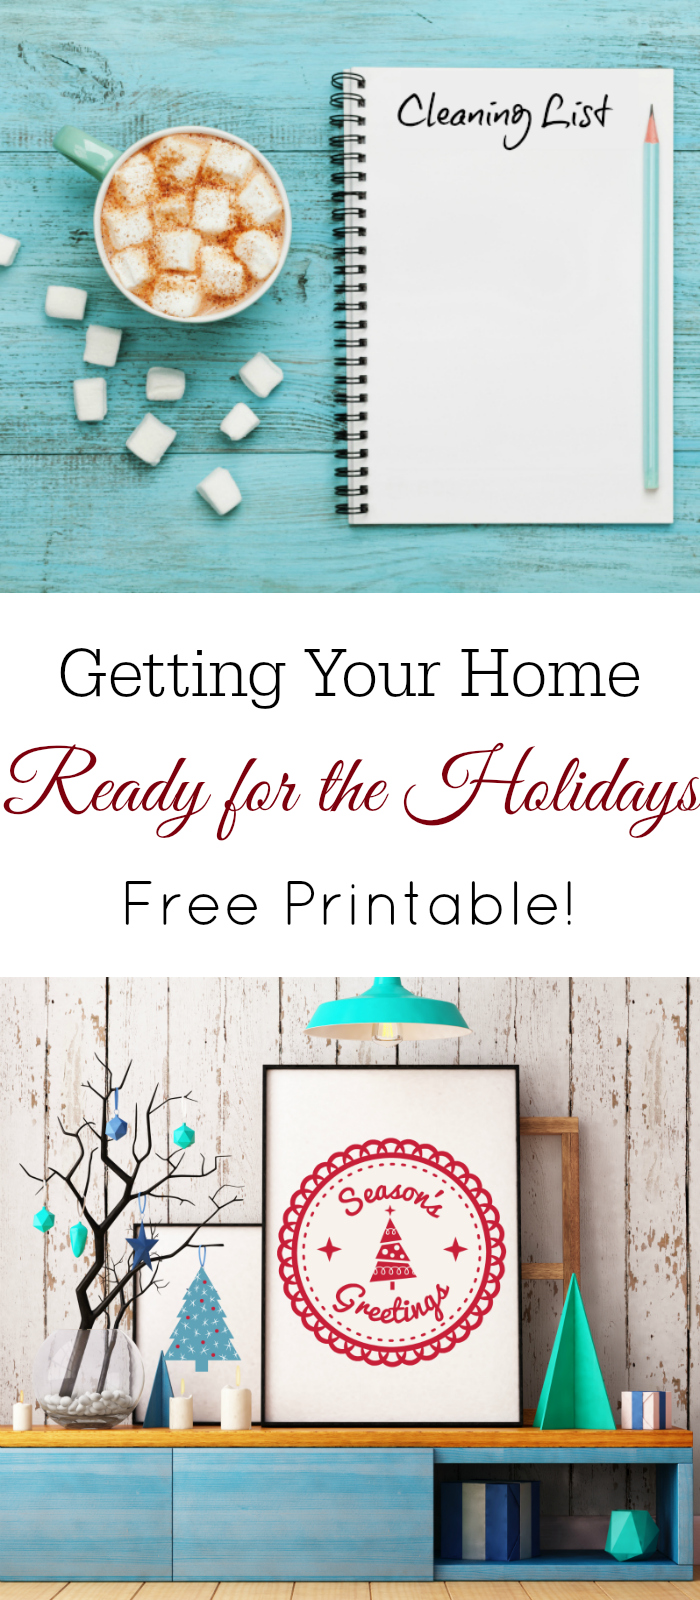 Get your home ready for the holidays, christmas cleaning, free printable